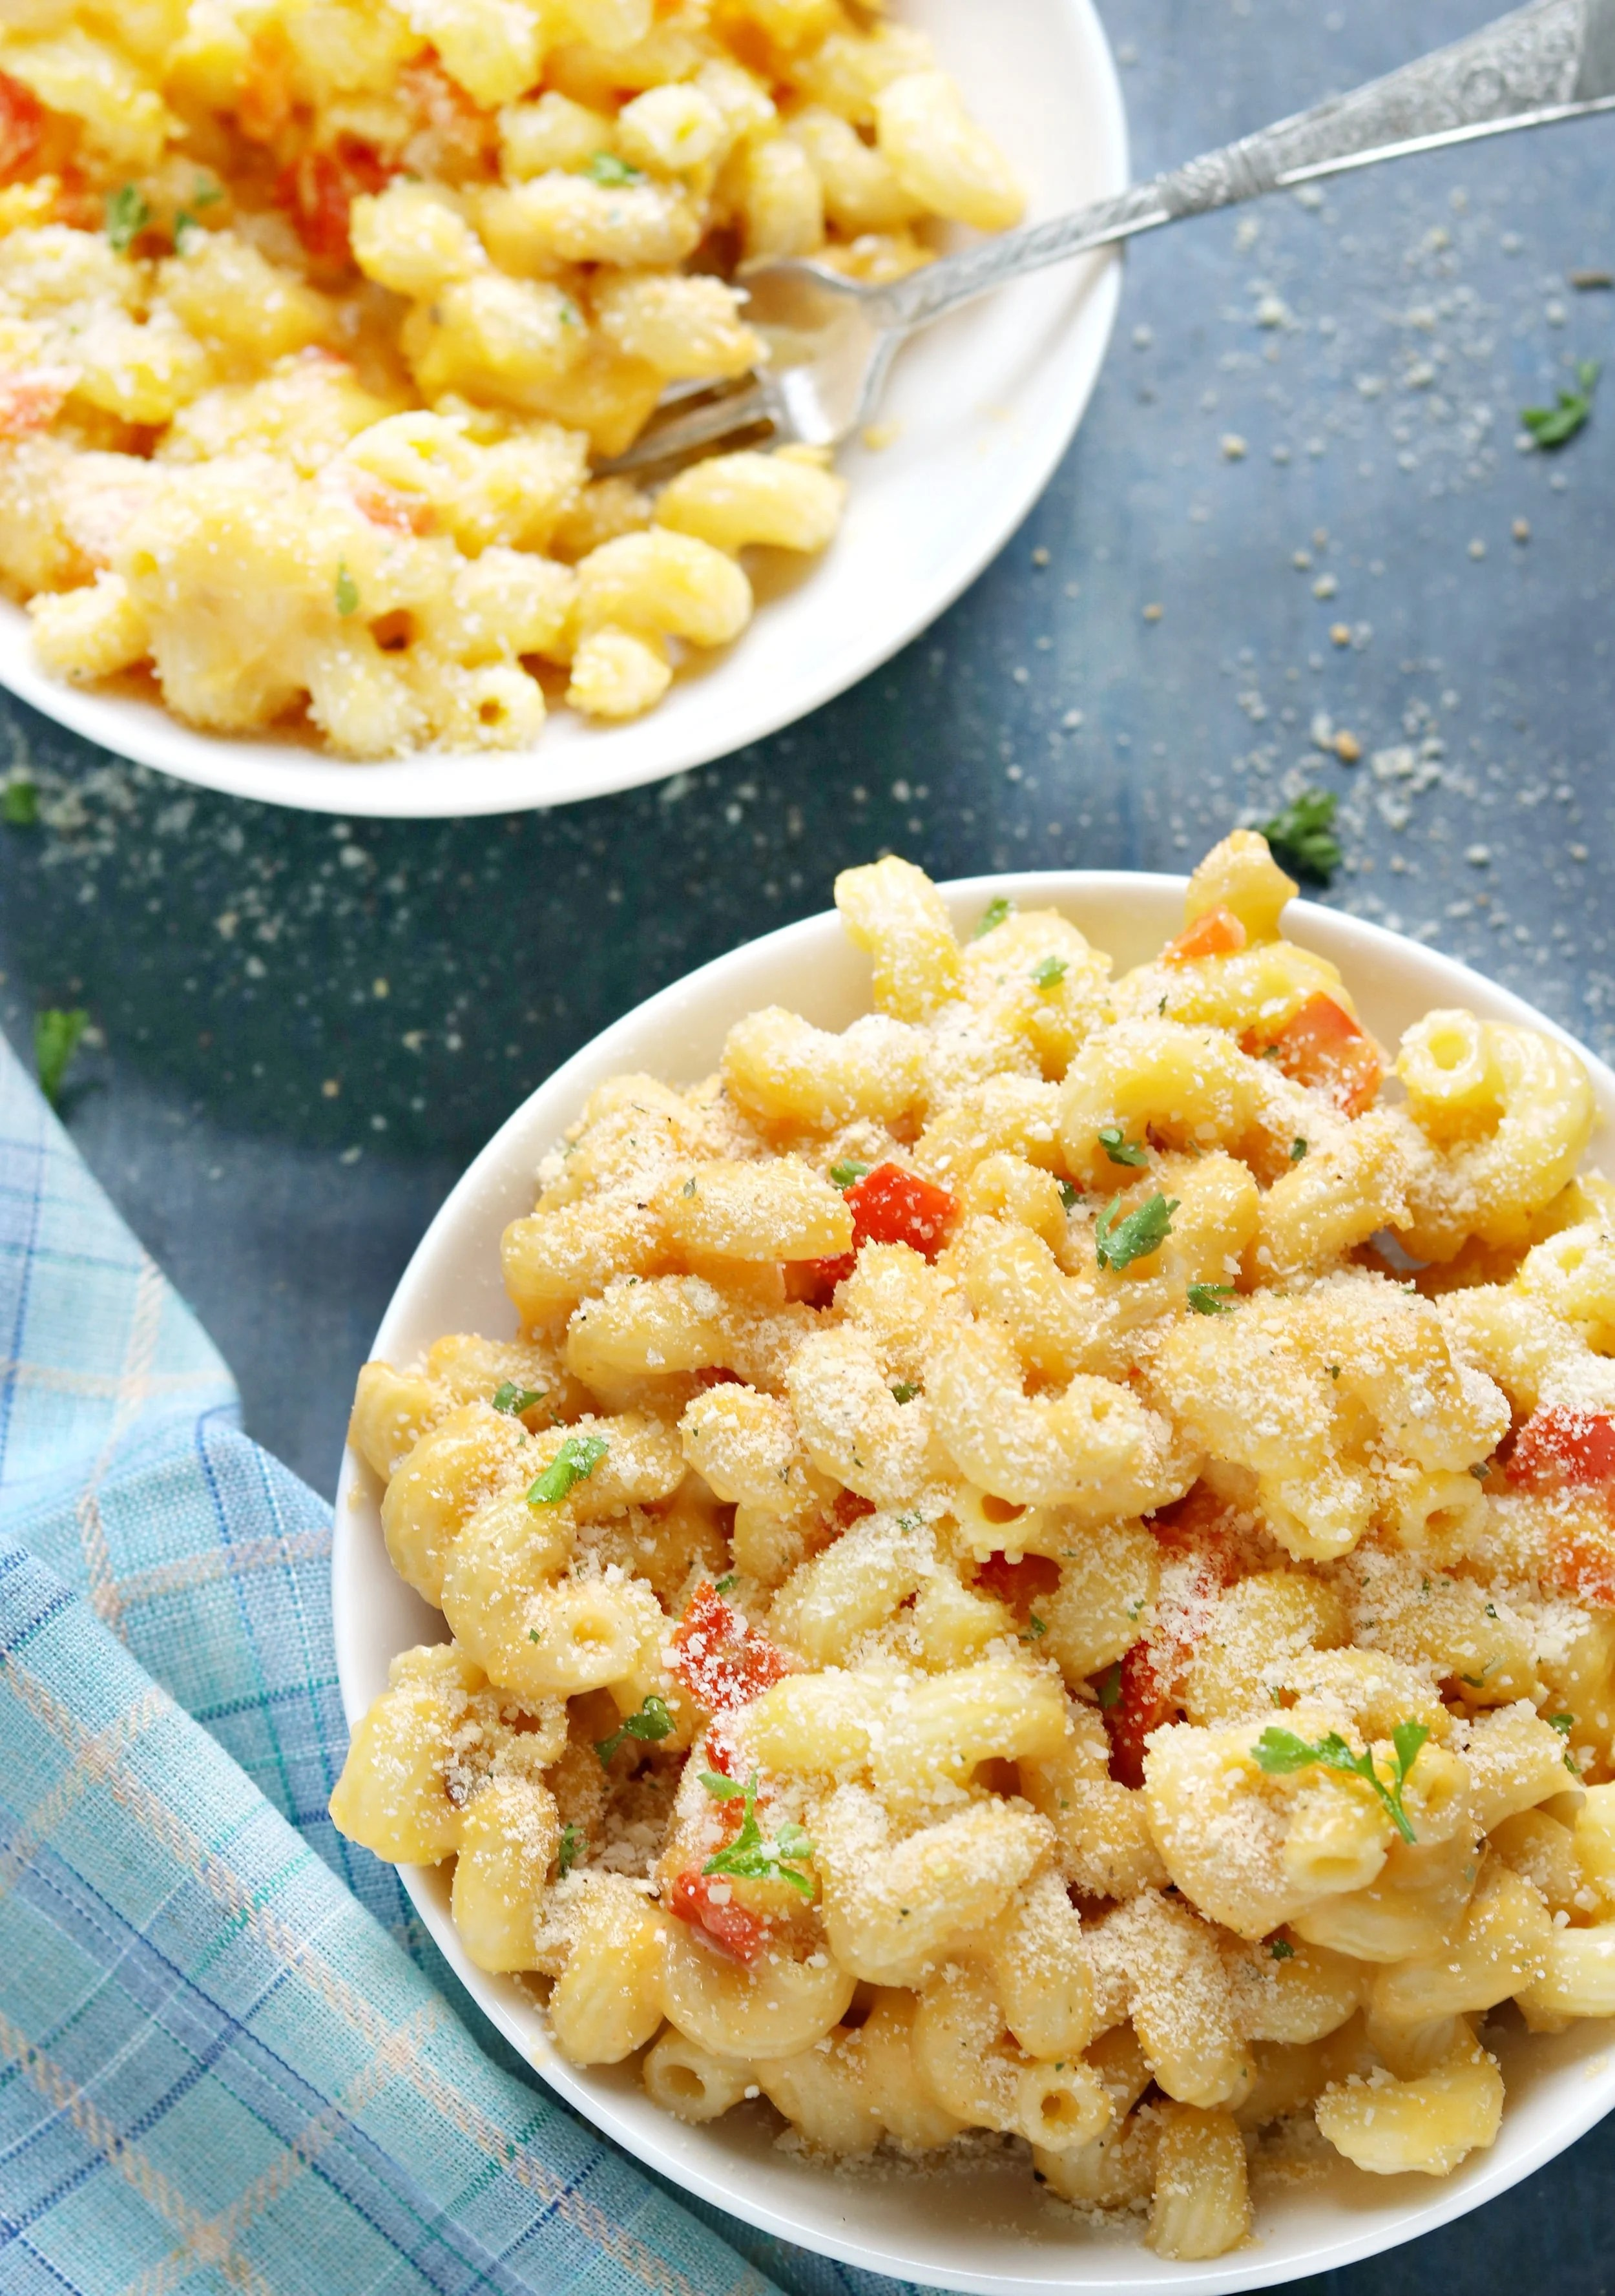 two bowls of macaroni & cheese